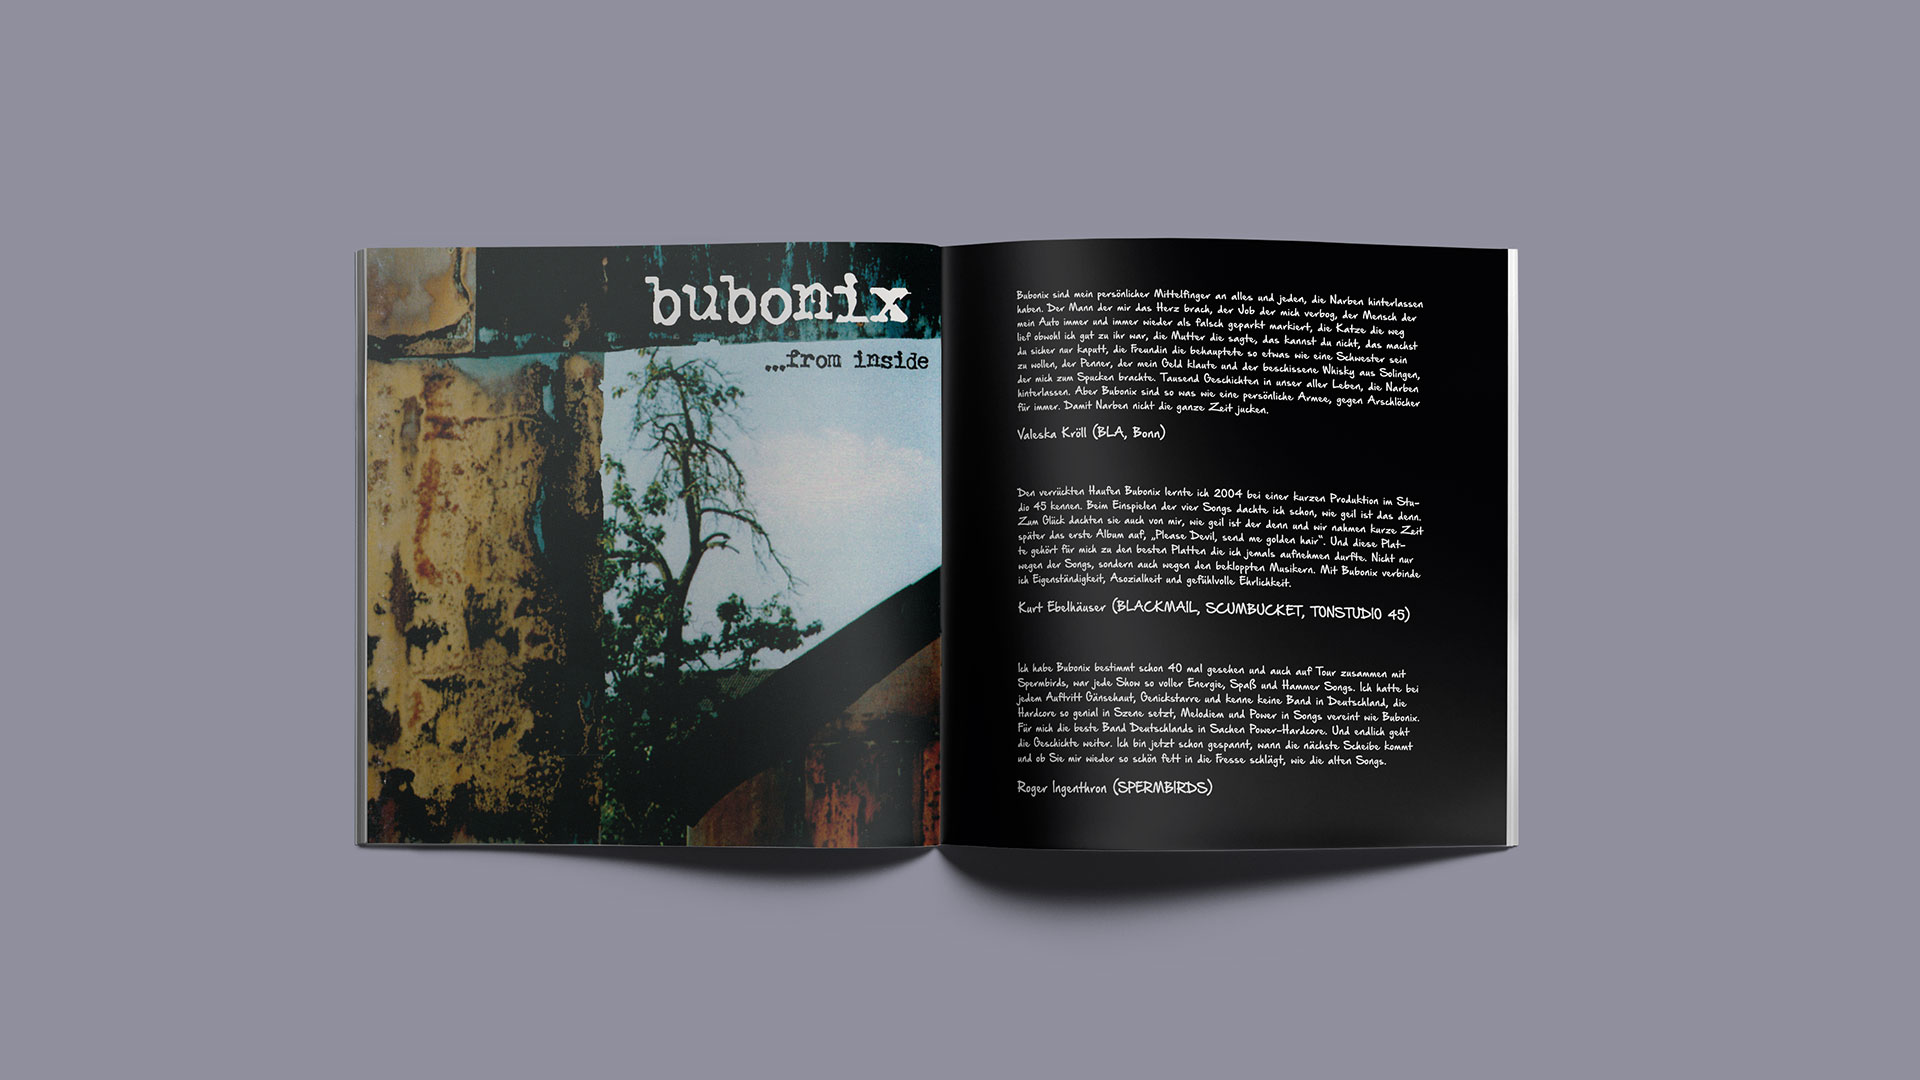 bubonix_still-from-inside_booklet_6-7